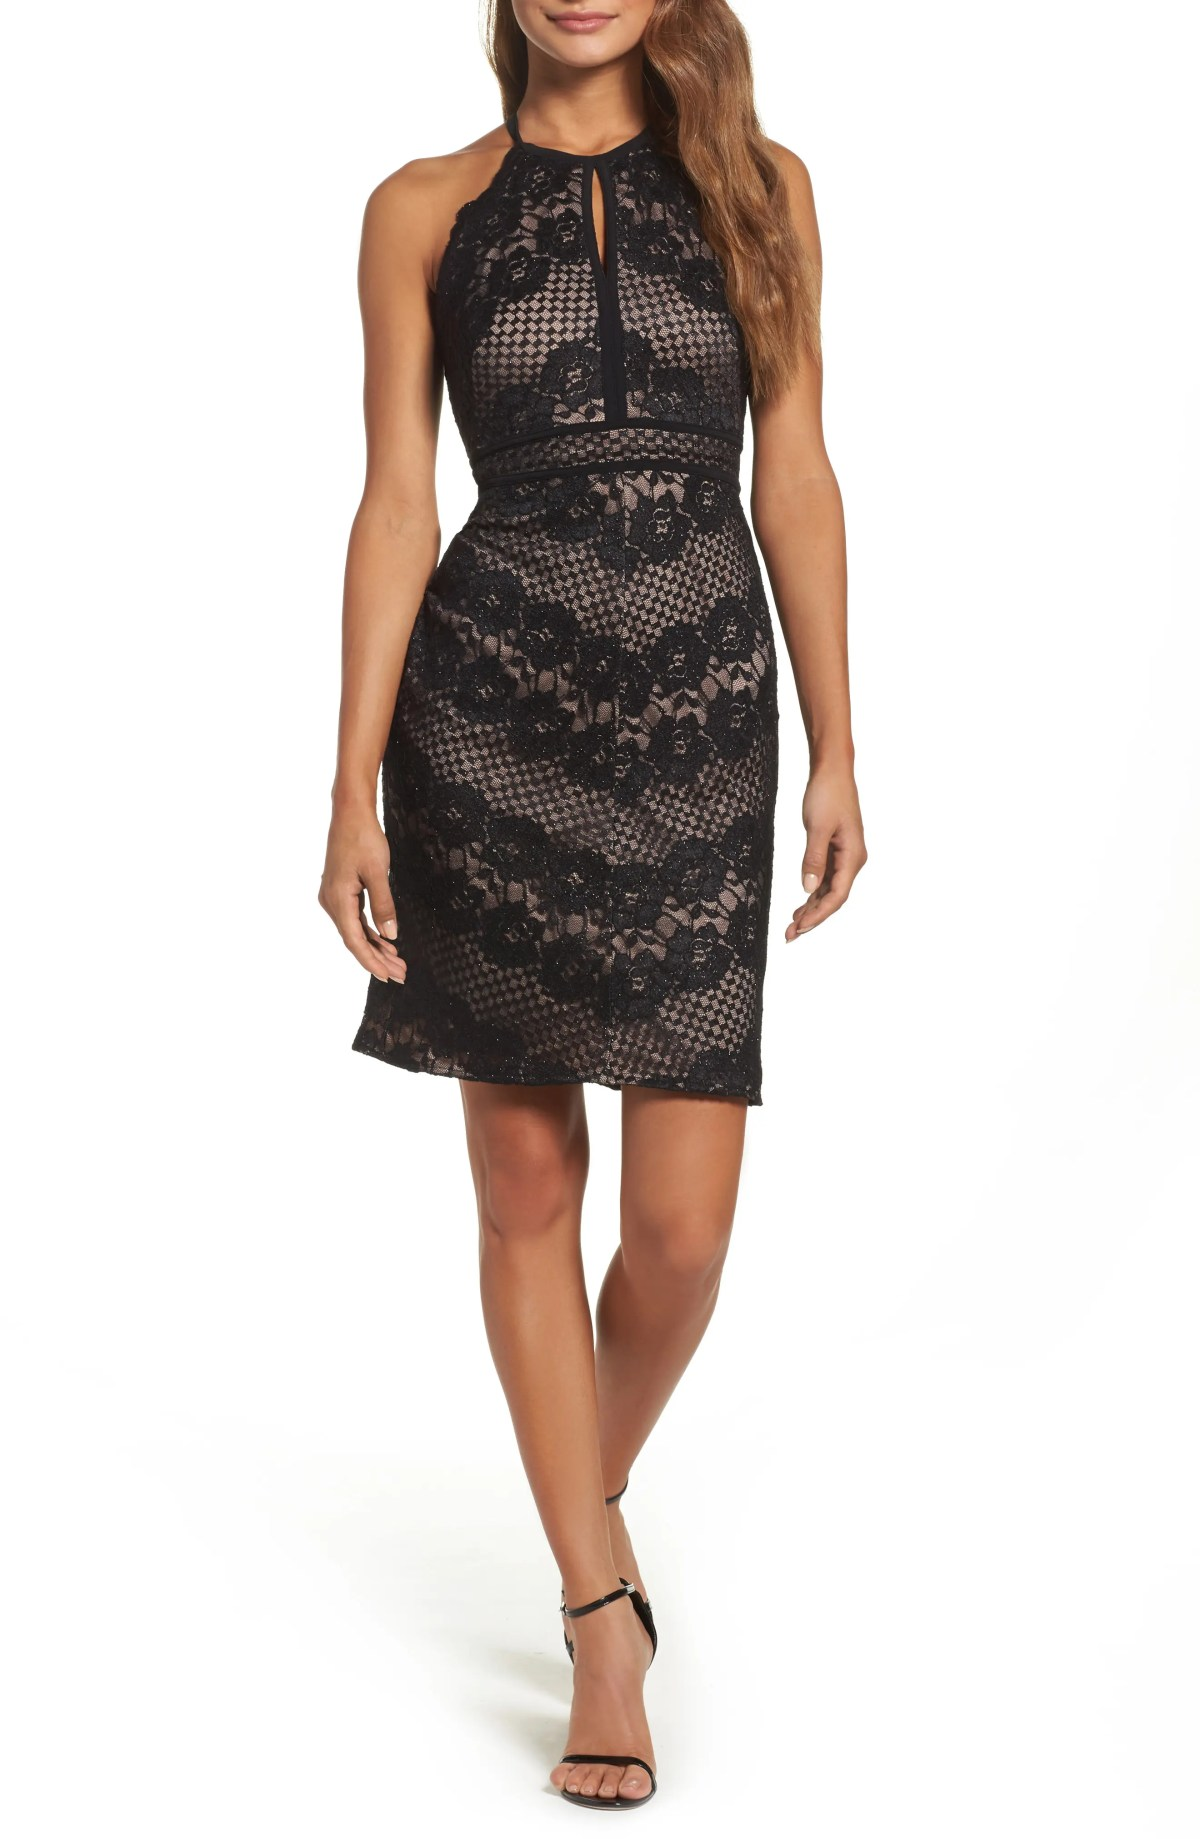 MORGAN & CO. Mitered Lace Dress, Main, color, BLACK/ NUDE